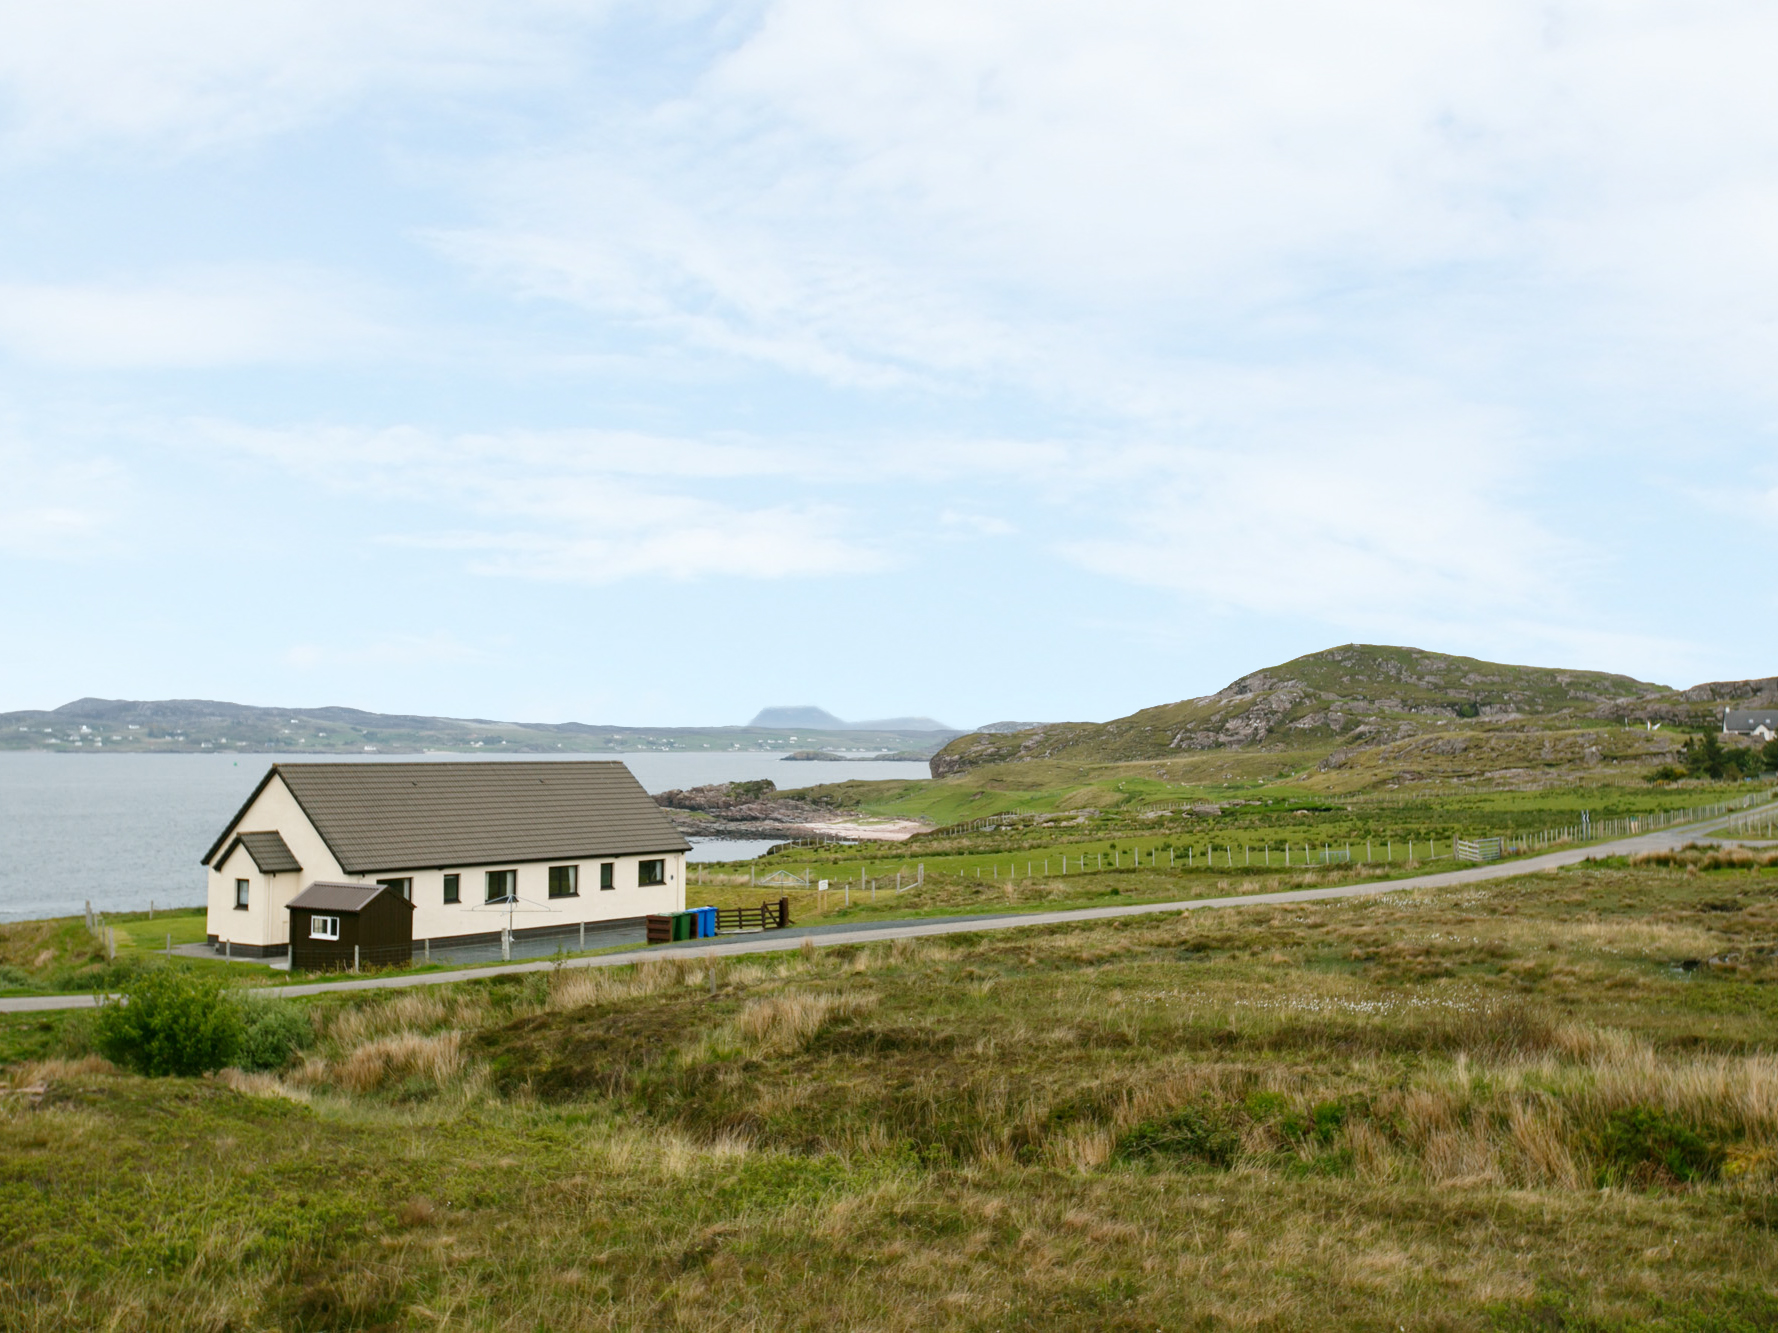 1 BAYVIEW BUNGALOW, Scotland, Scottish Highlands, Ross and Cromarty, Poolewe